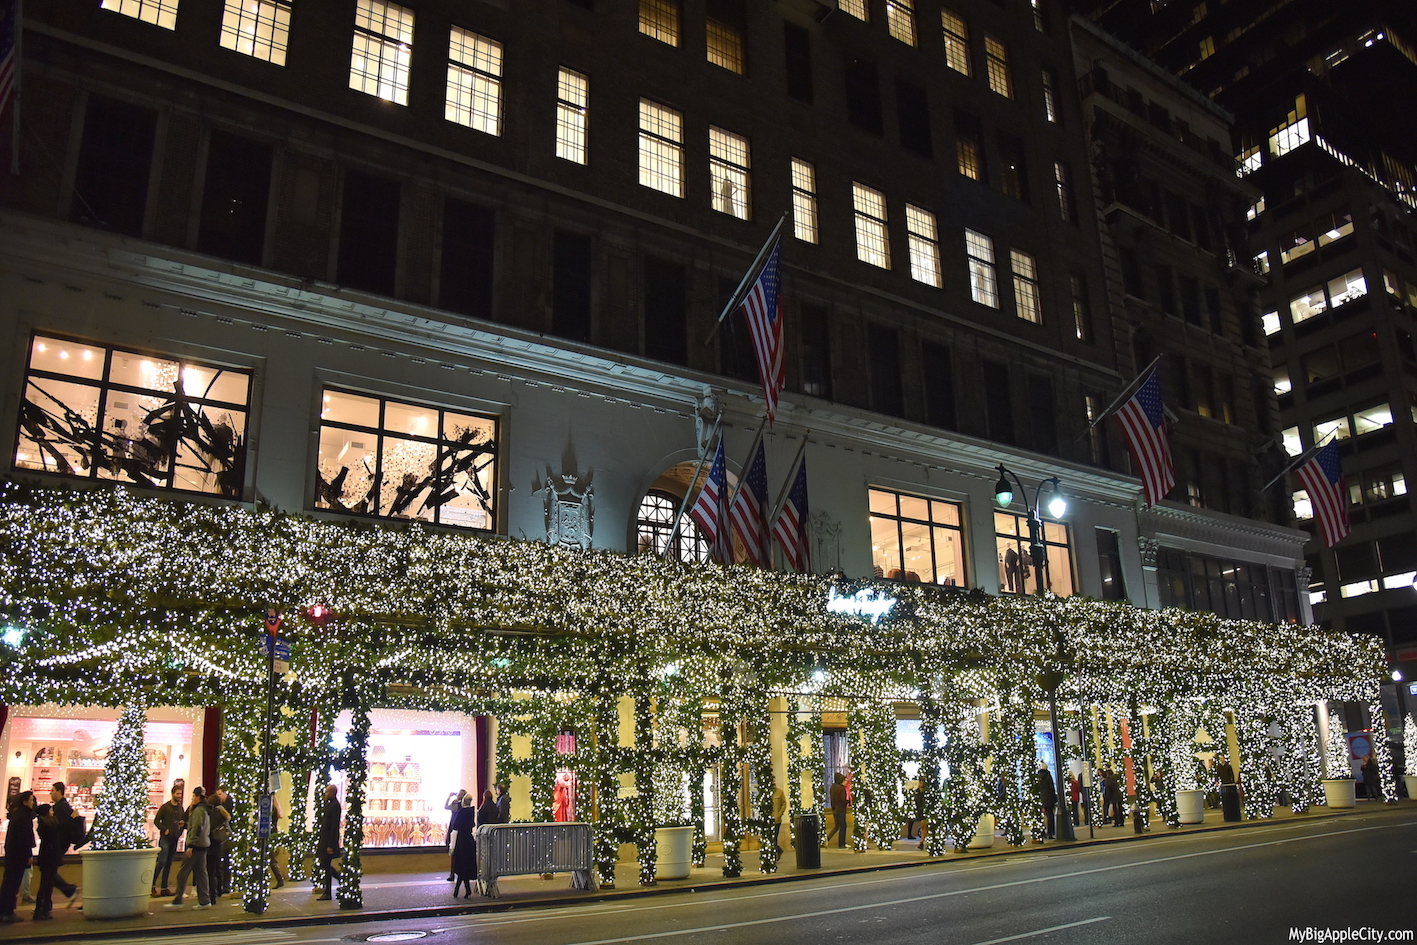 Fifth-Avenue-Holiday-window-new-york-travelblogger-mybigapplecity